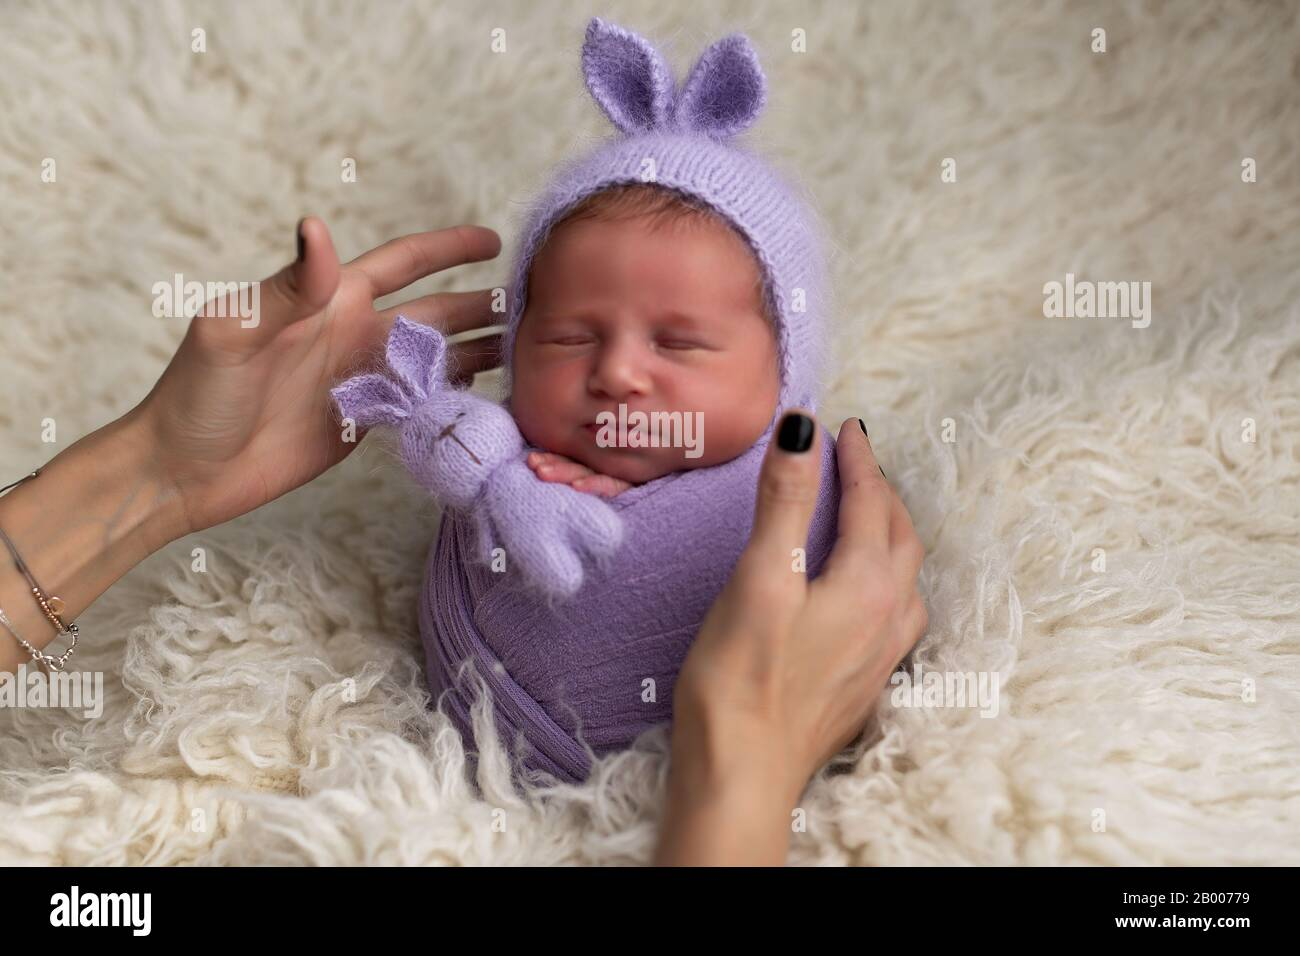 3 Easy Newborn Photography Poses To Try On Your Next Session   956x1300